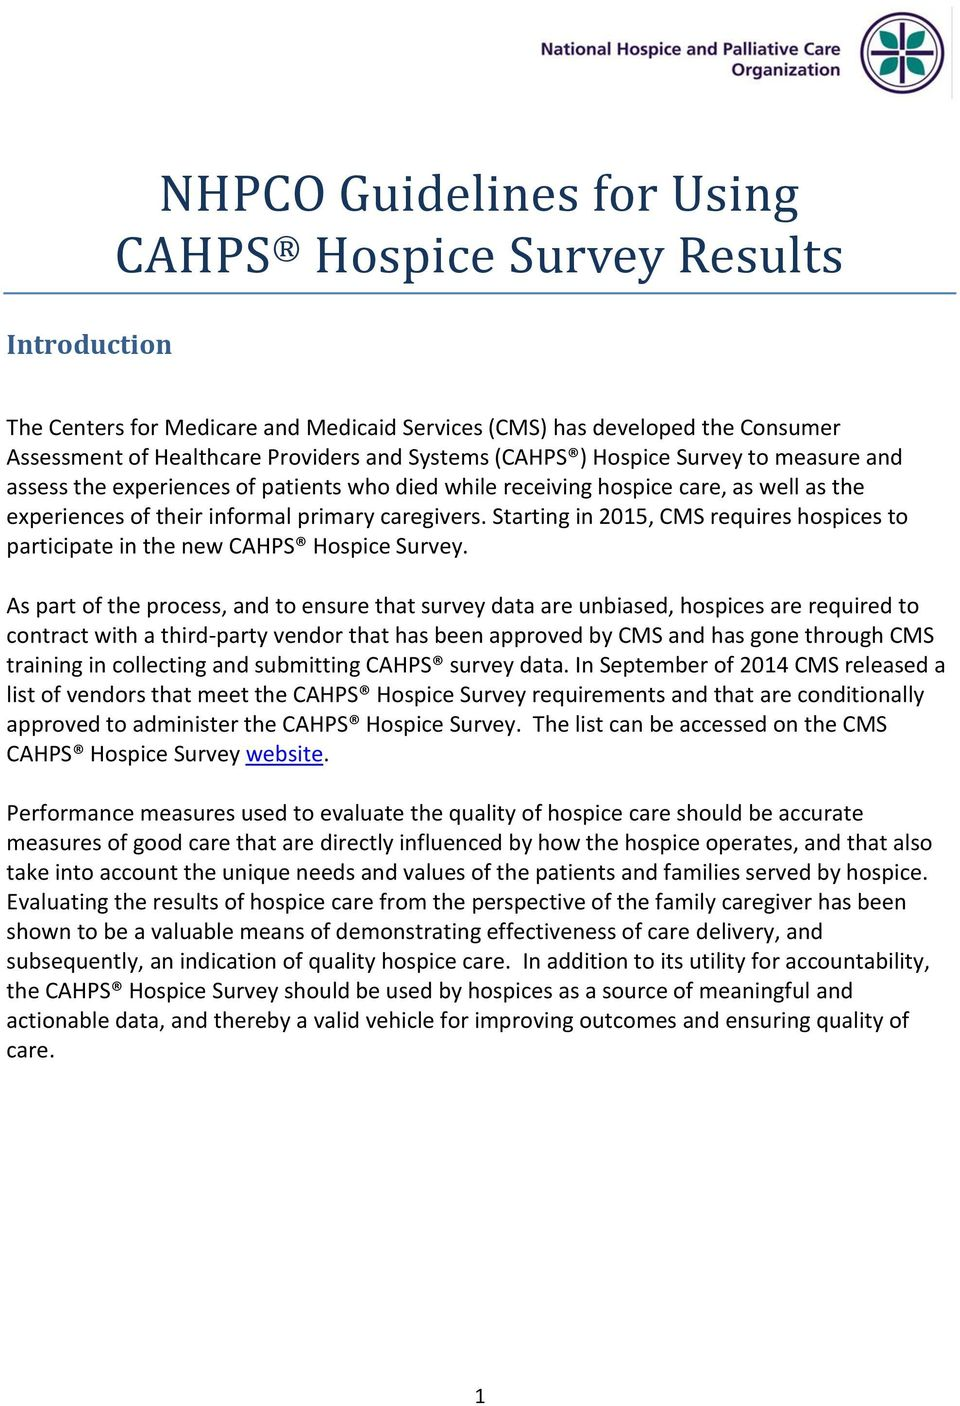 Starting in 2015, CMS requires hspices t participate in the new CAHPS Hspice Survey.